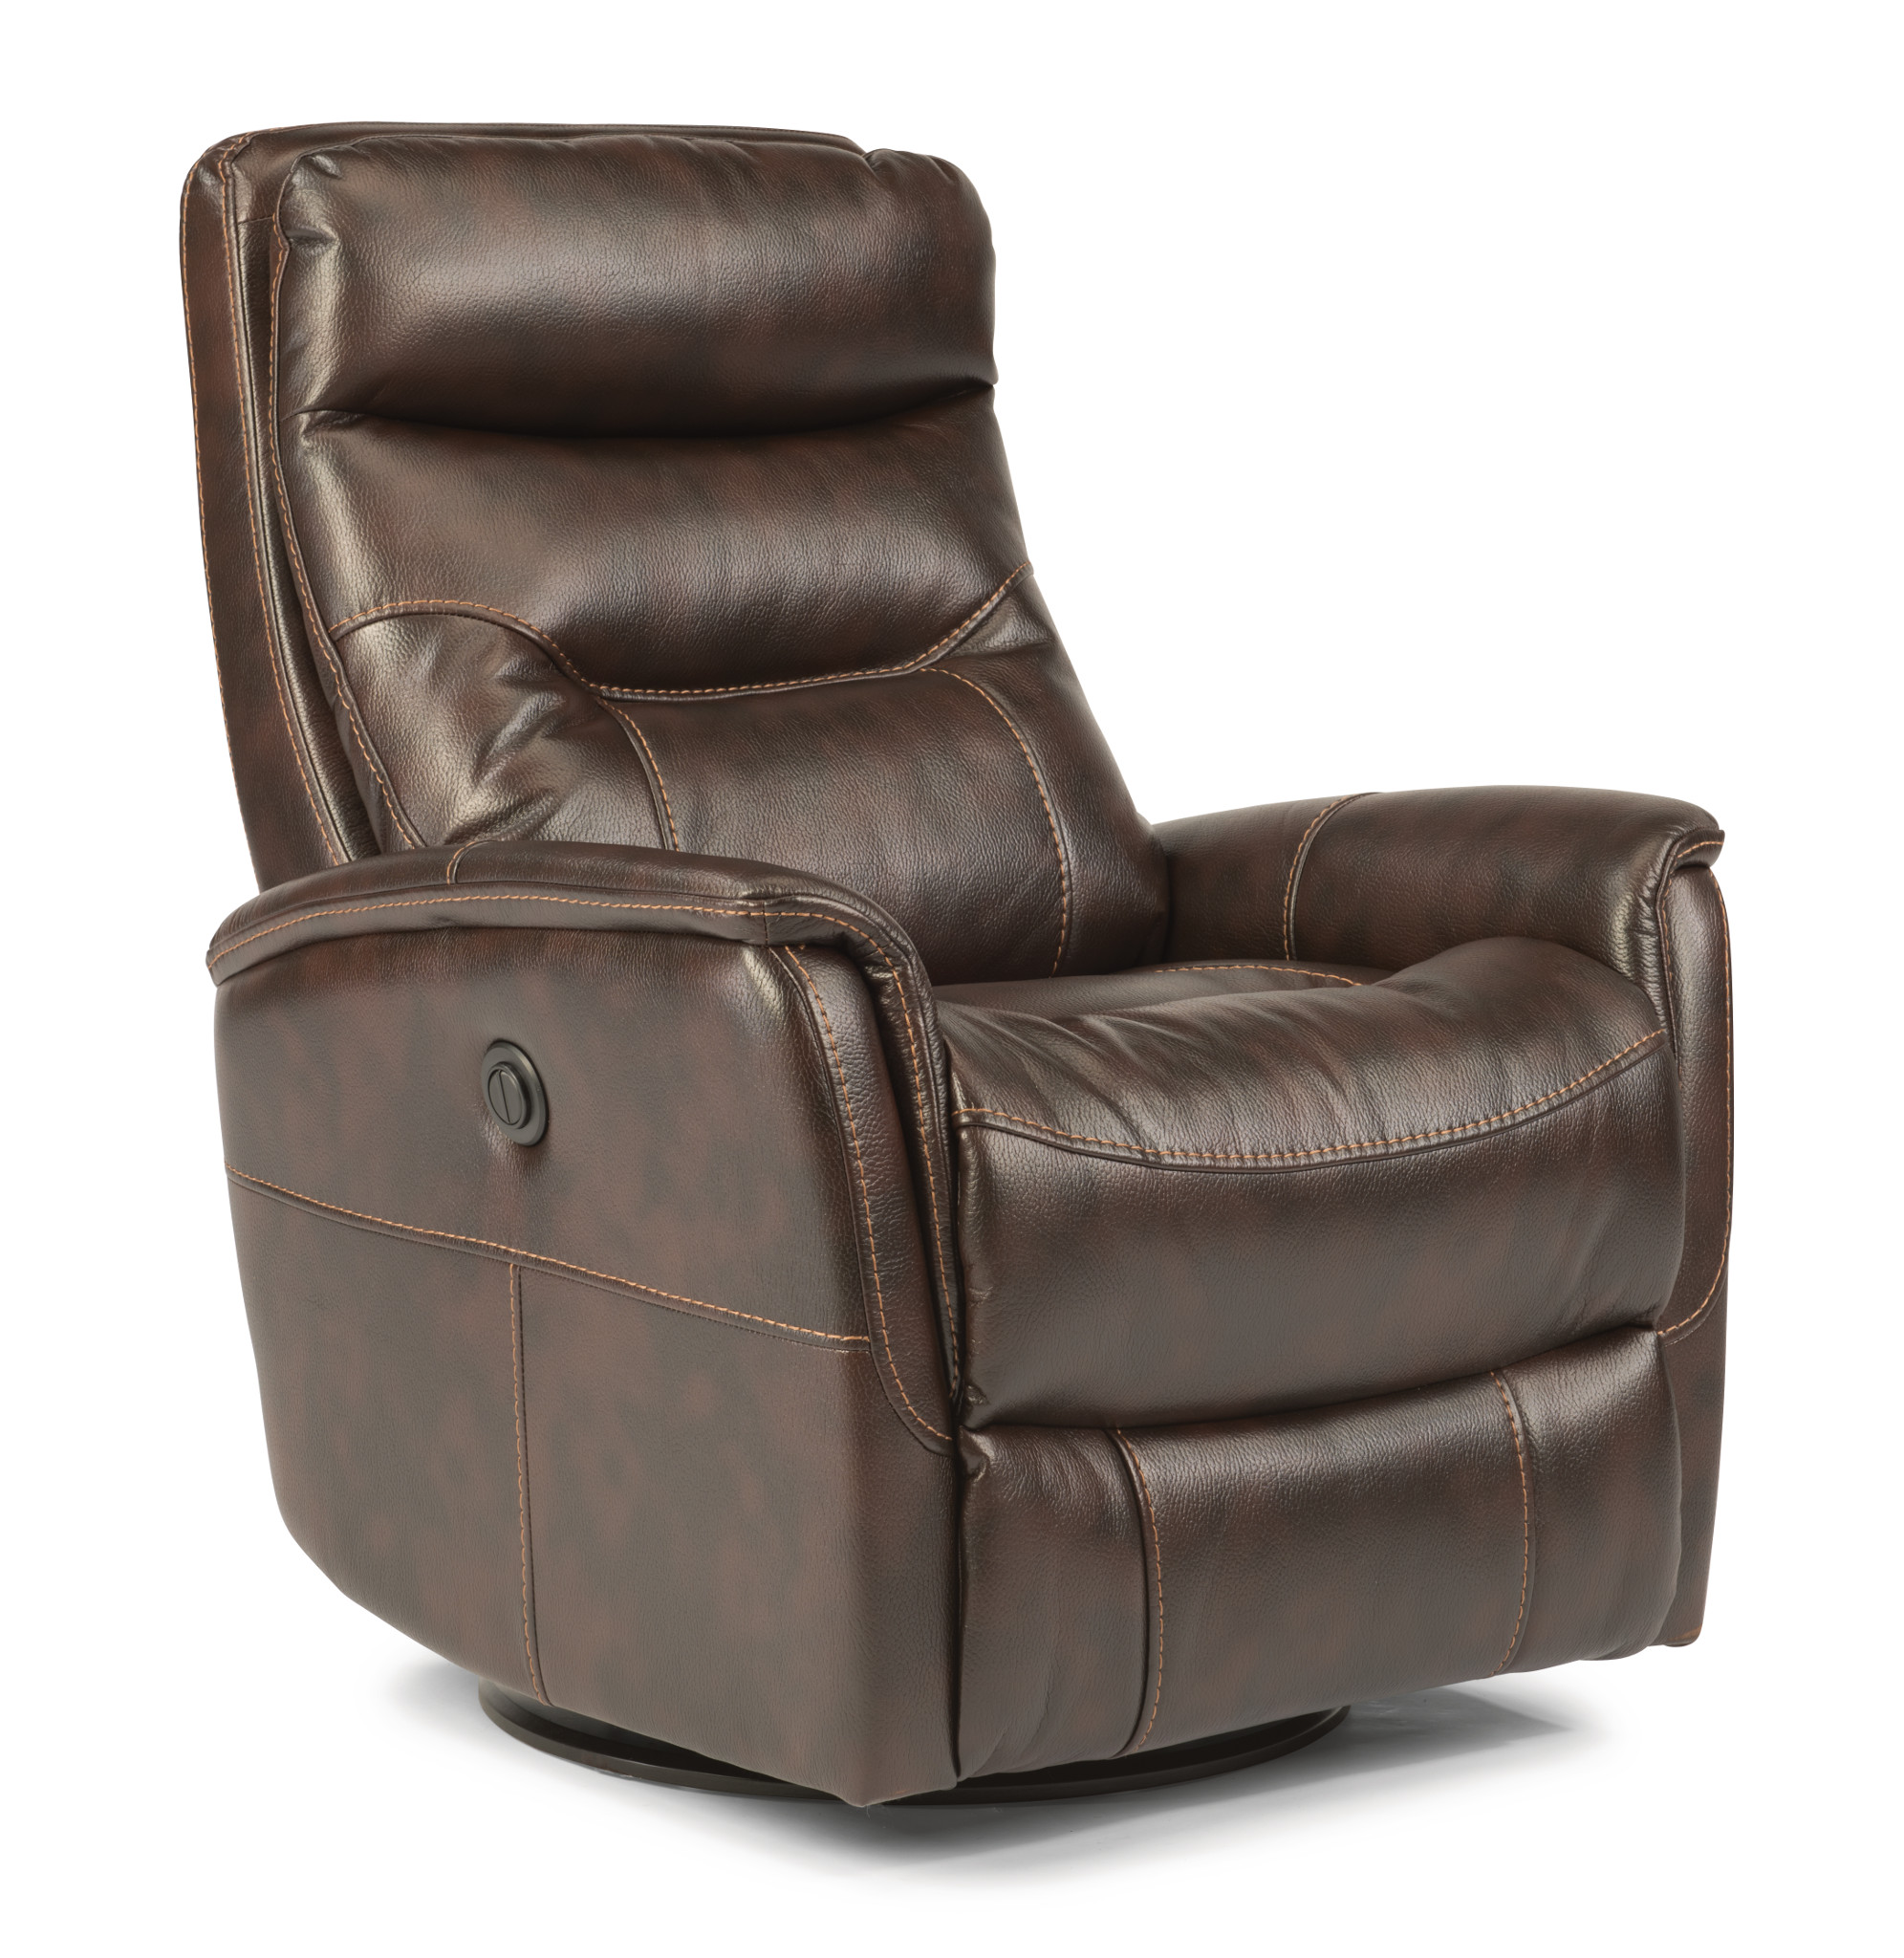 Flexsteel® Alden King Power Swivel Gliding Recliner 1392 53PK